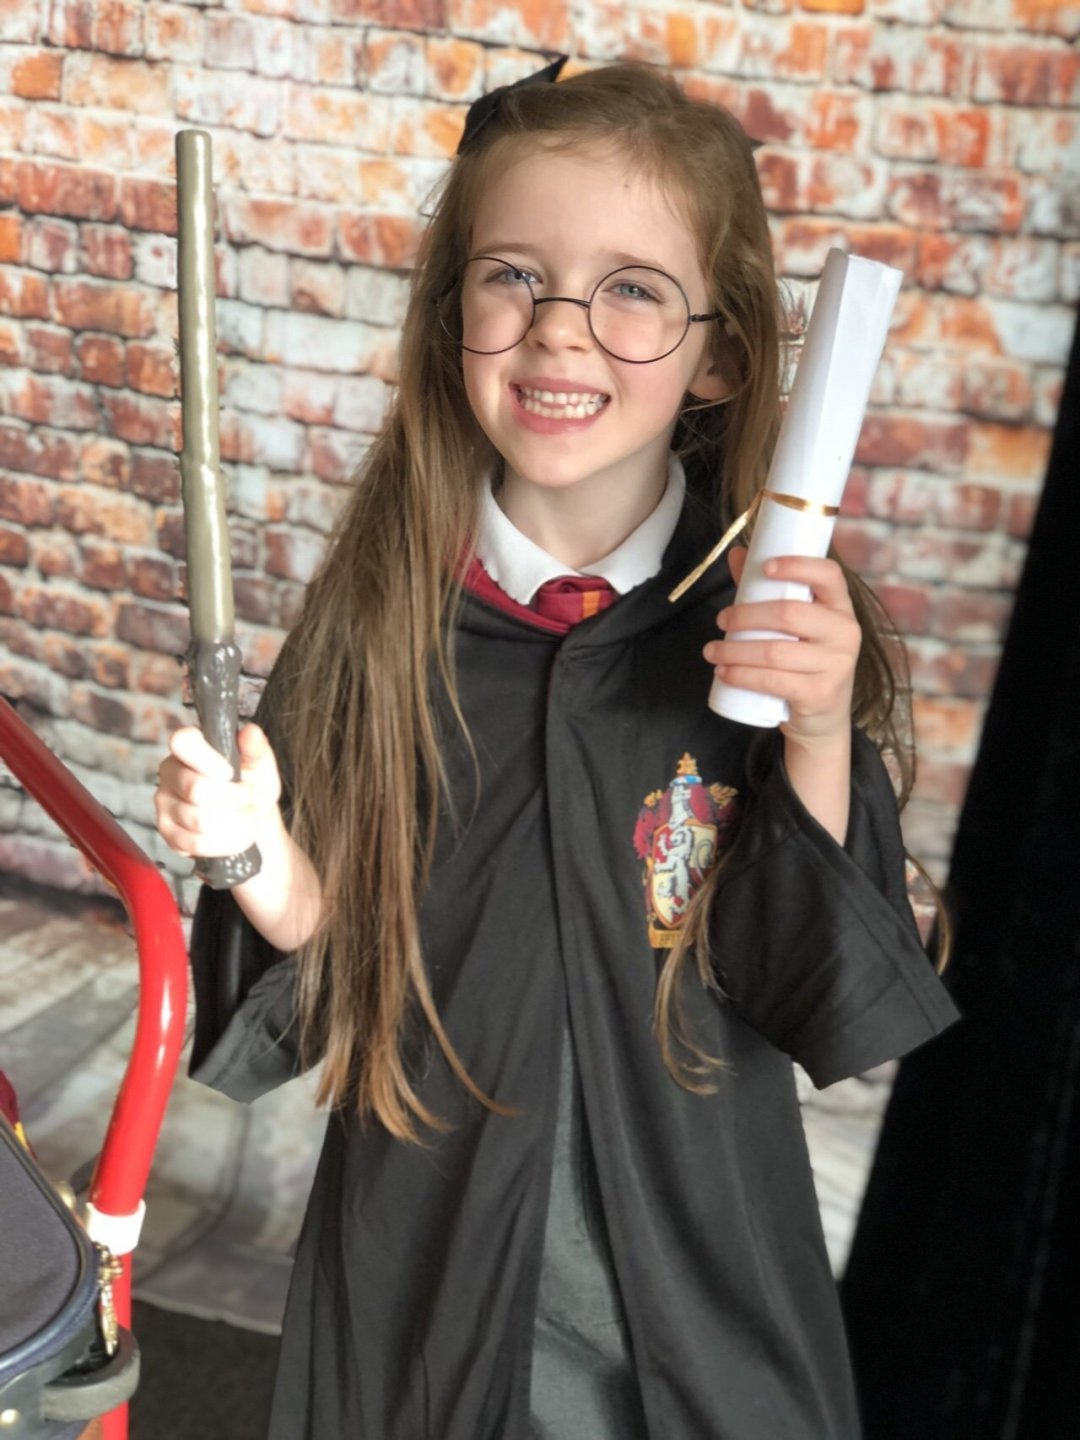 Child dressed in Harry Potter costume with wand and scroll at a magical themed afternoon tea